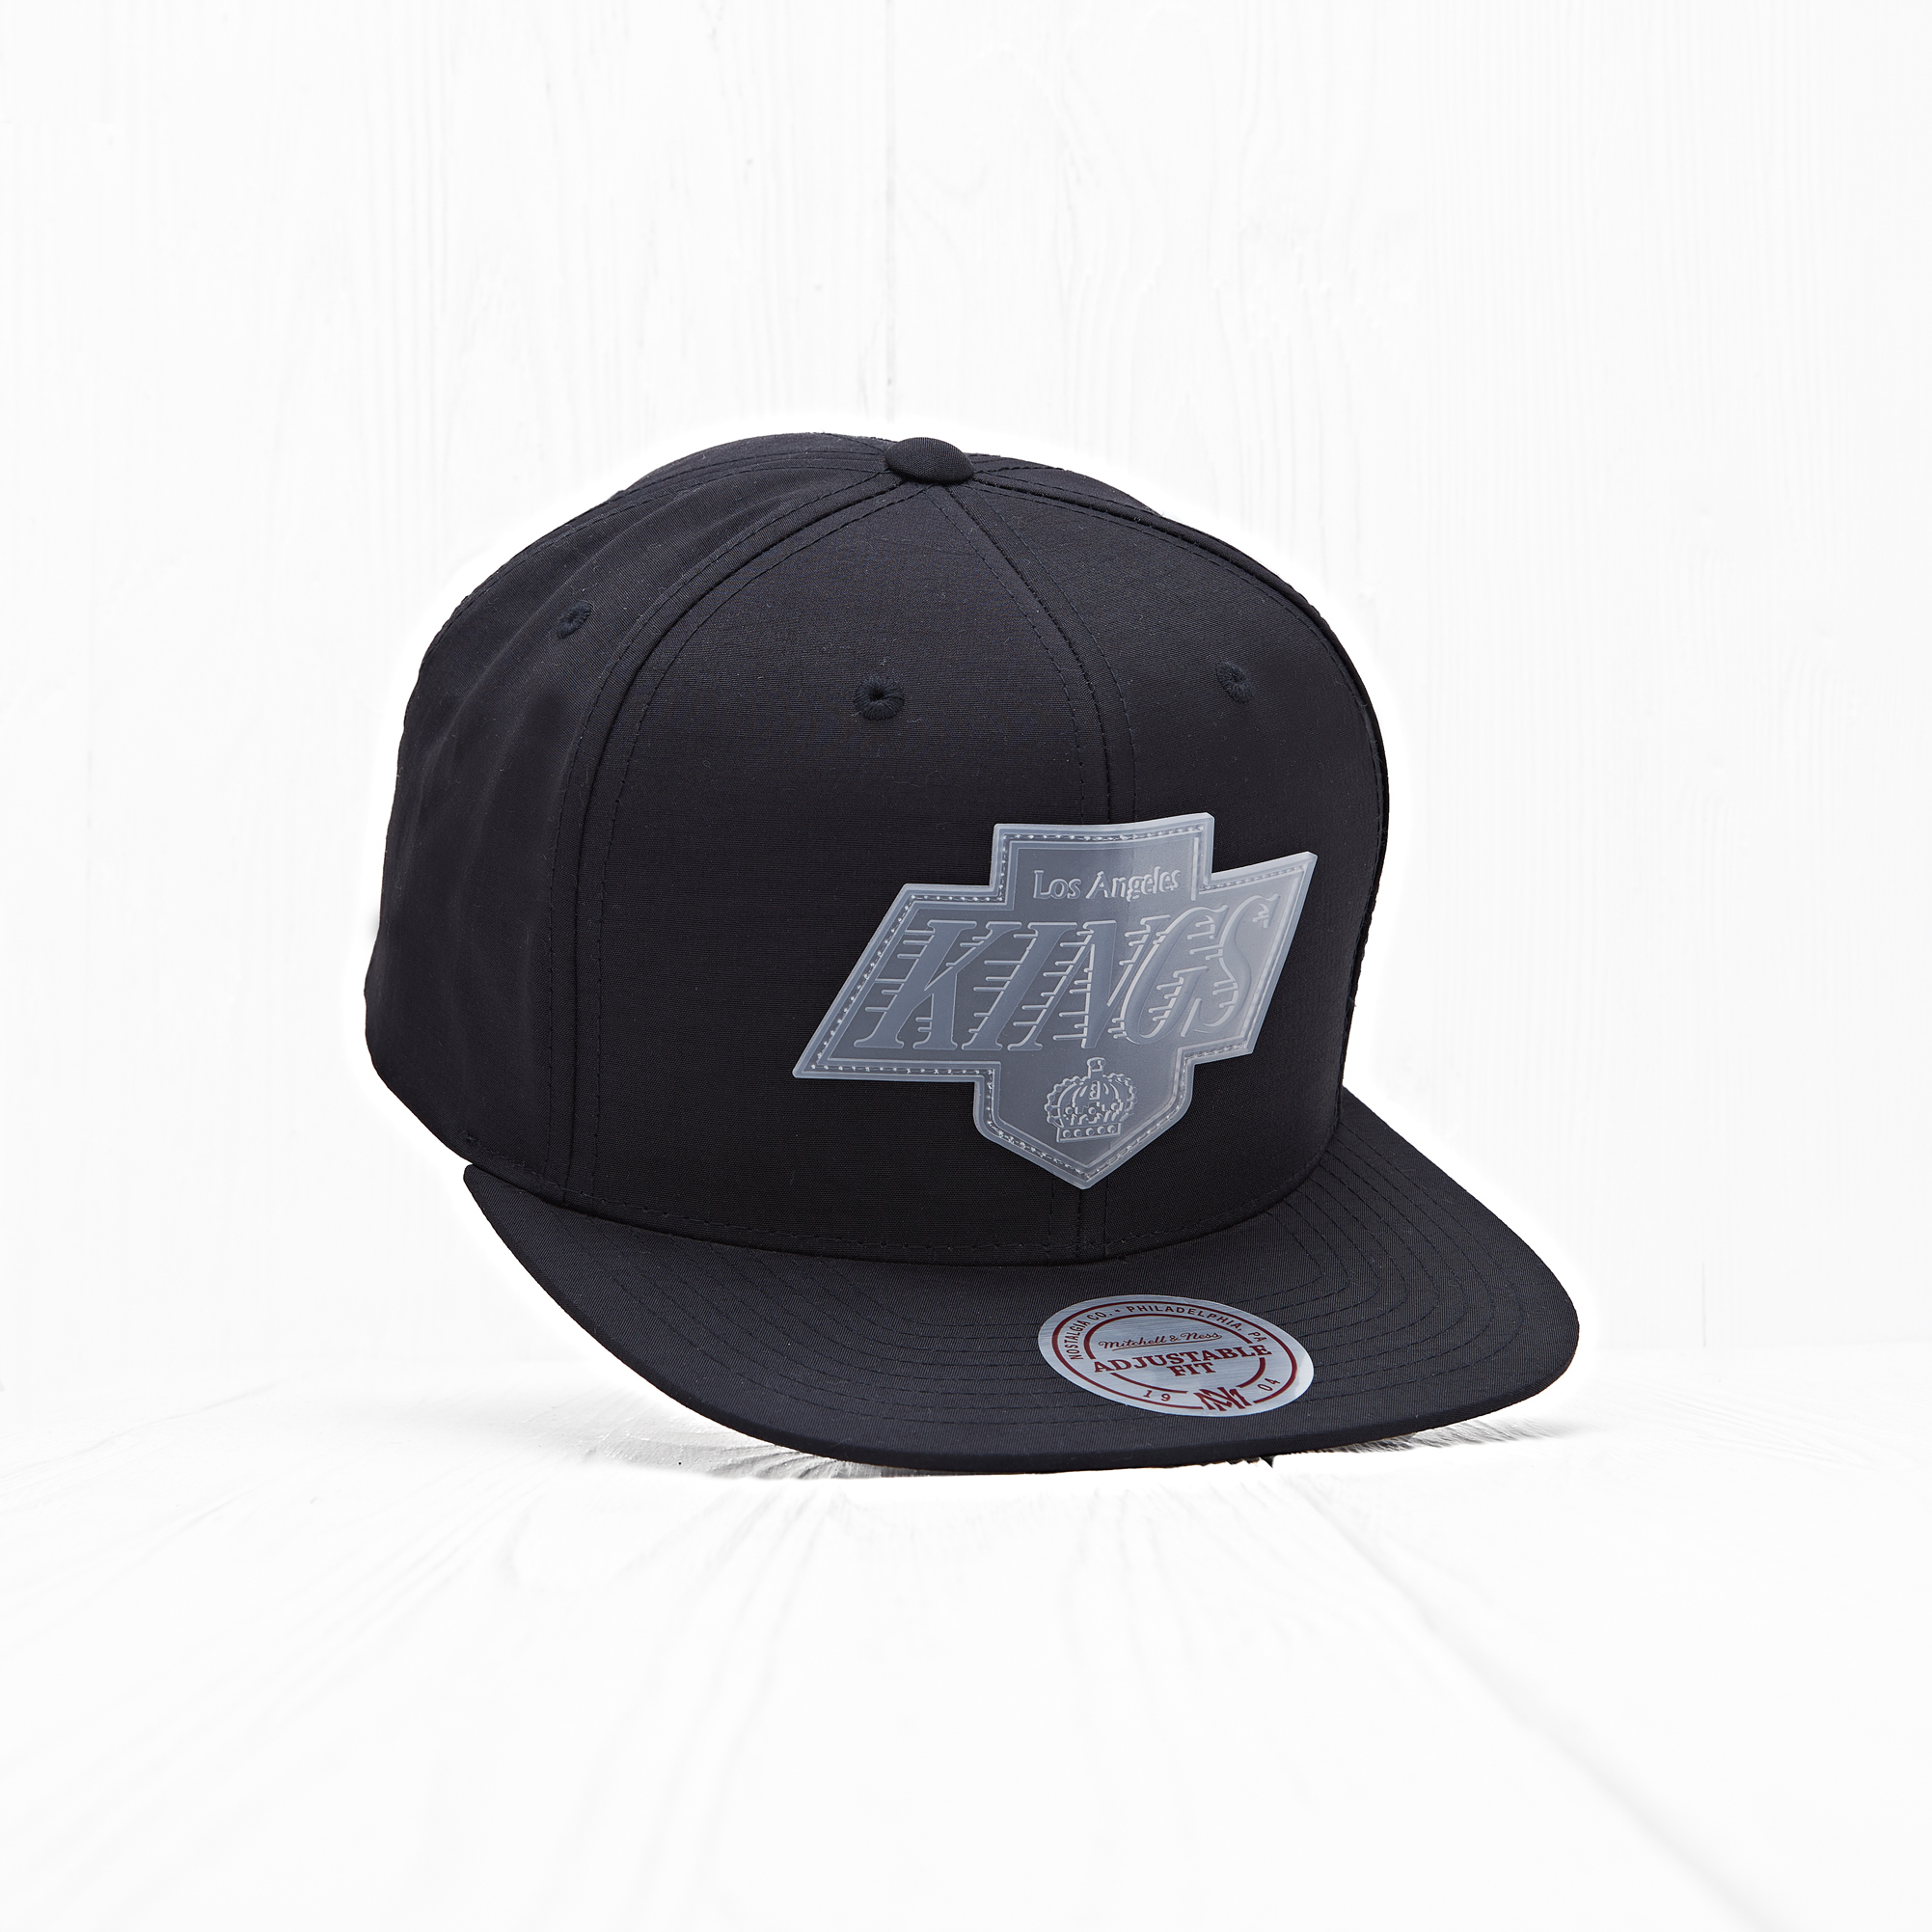 Снепбек Mitchell & Ness NHL LOS ANGELES KINGS Black